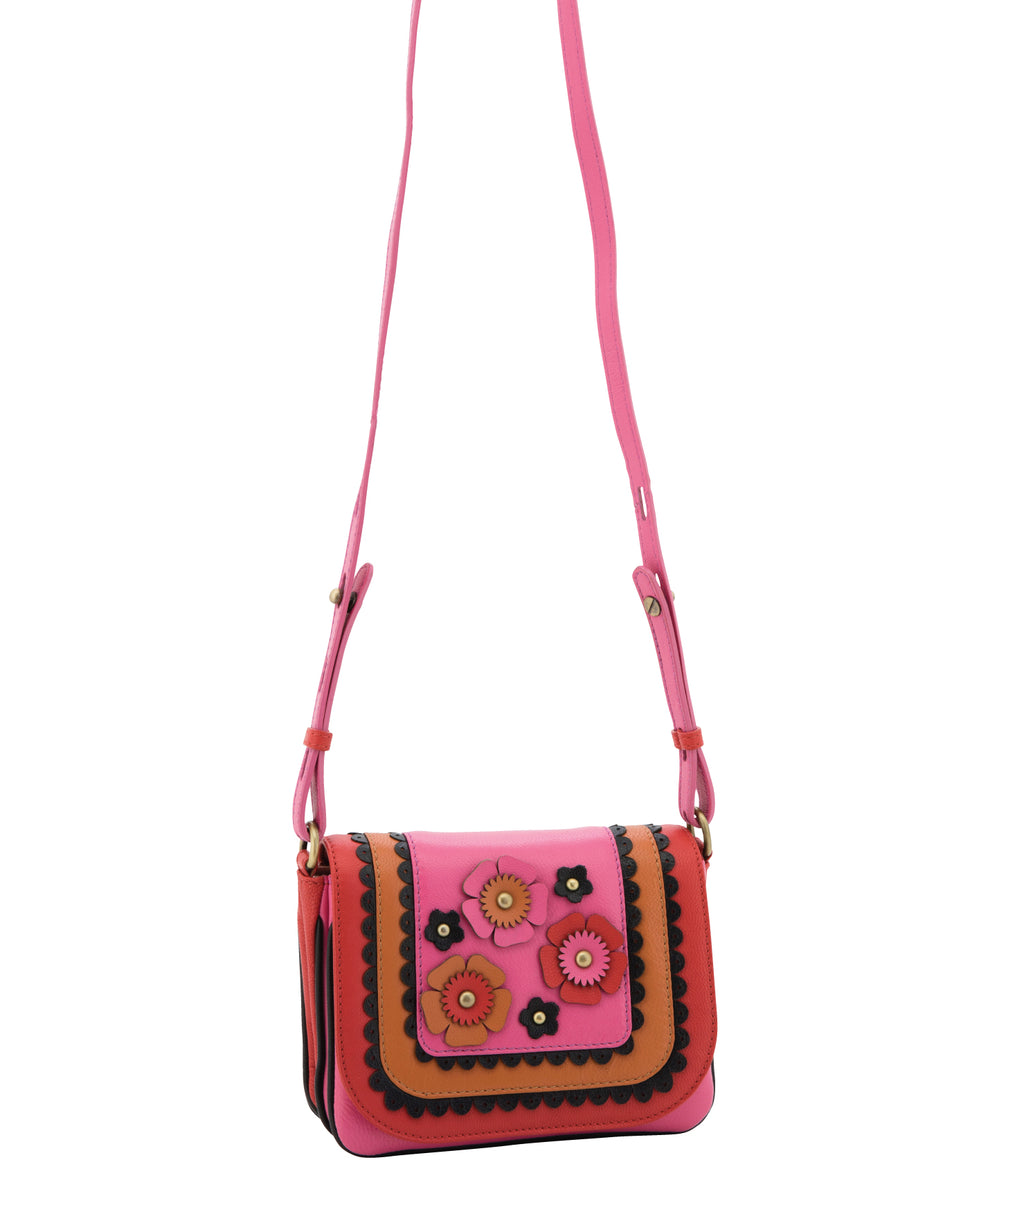 LILY Crossbody Bag - Dream Catcher